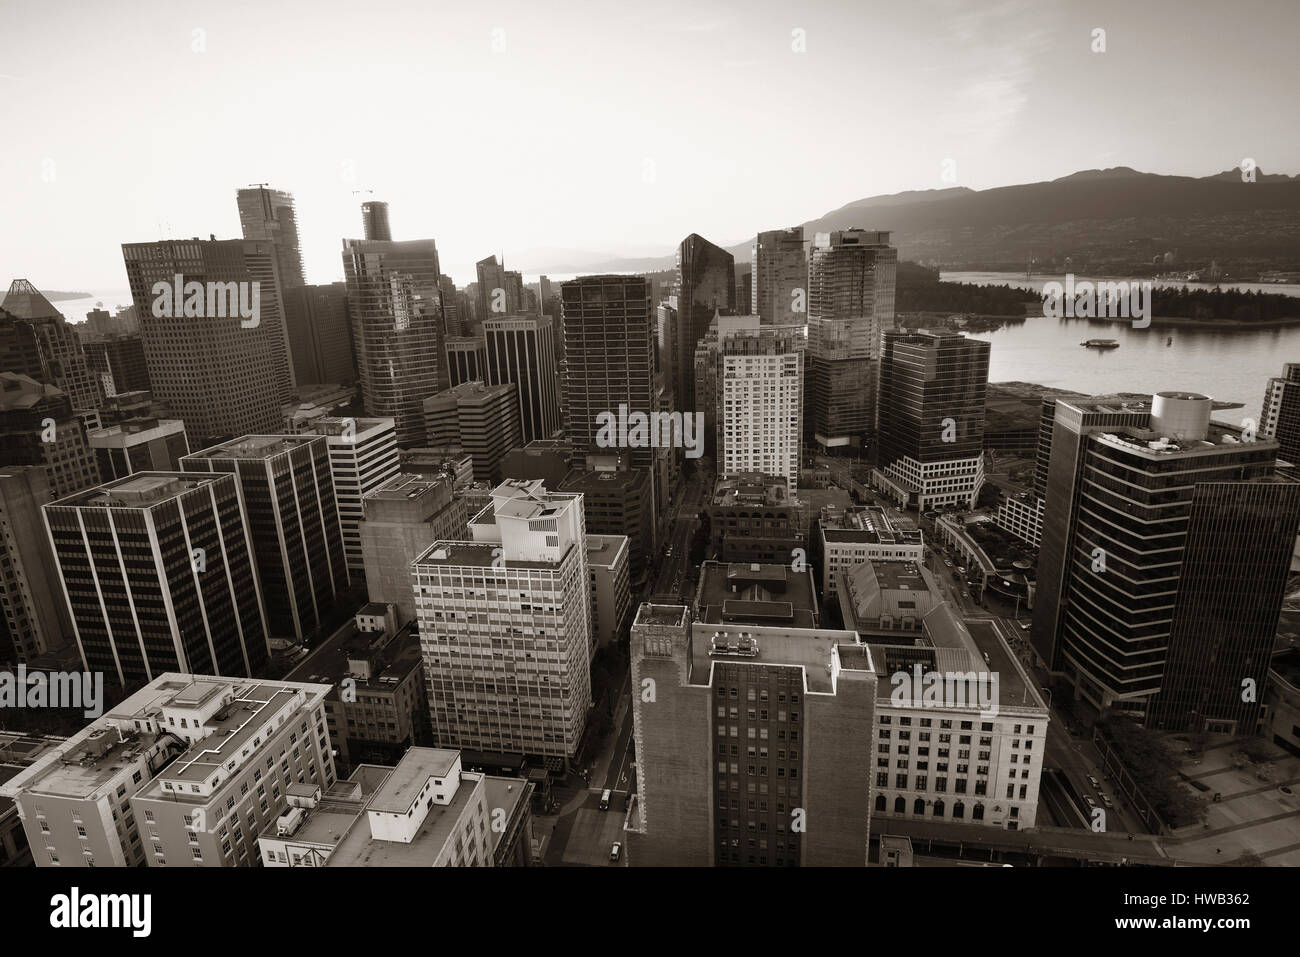 Vancouver rooftop view with urban architectures at sunset. - Stock Image